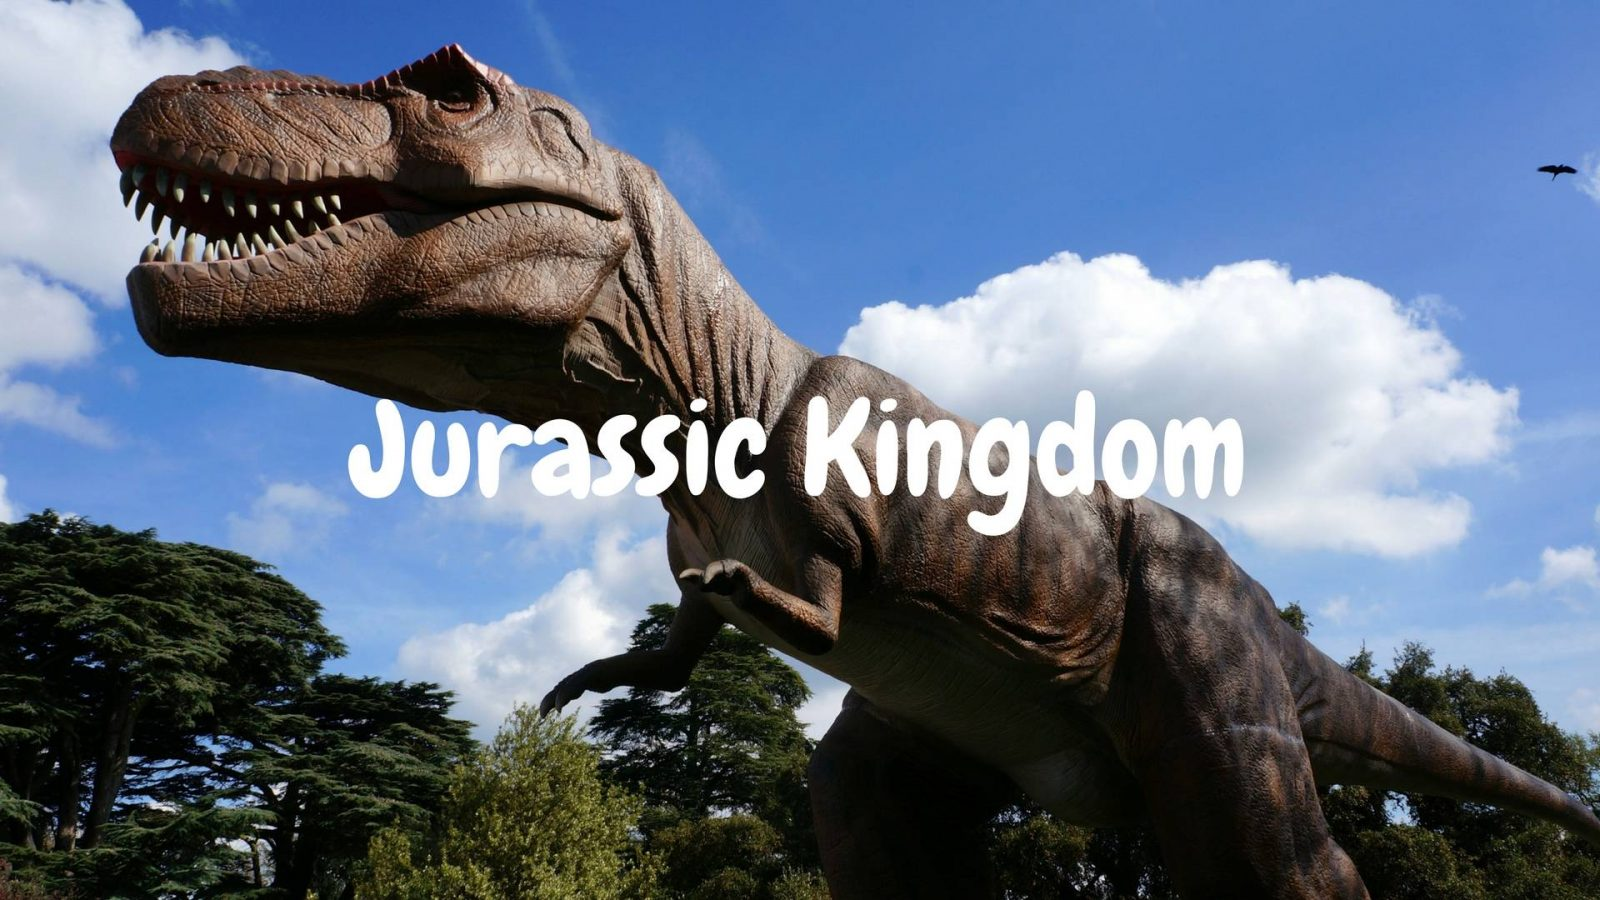 Have an Egg-citing Easter weekend at Jurassic Kingdom!